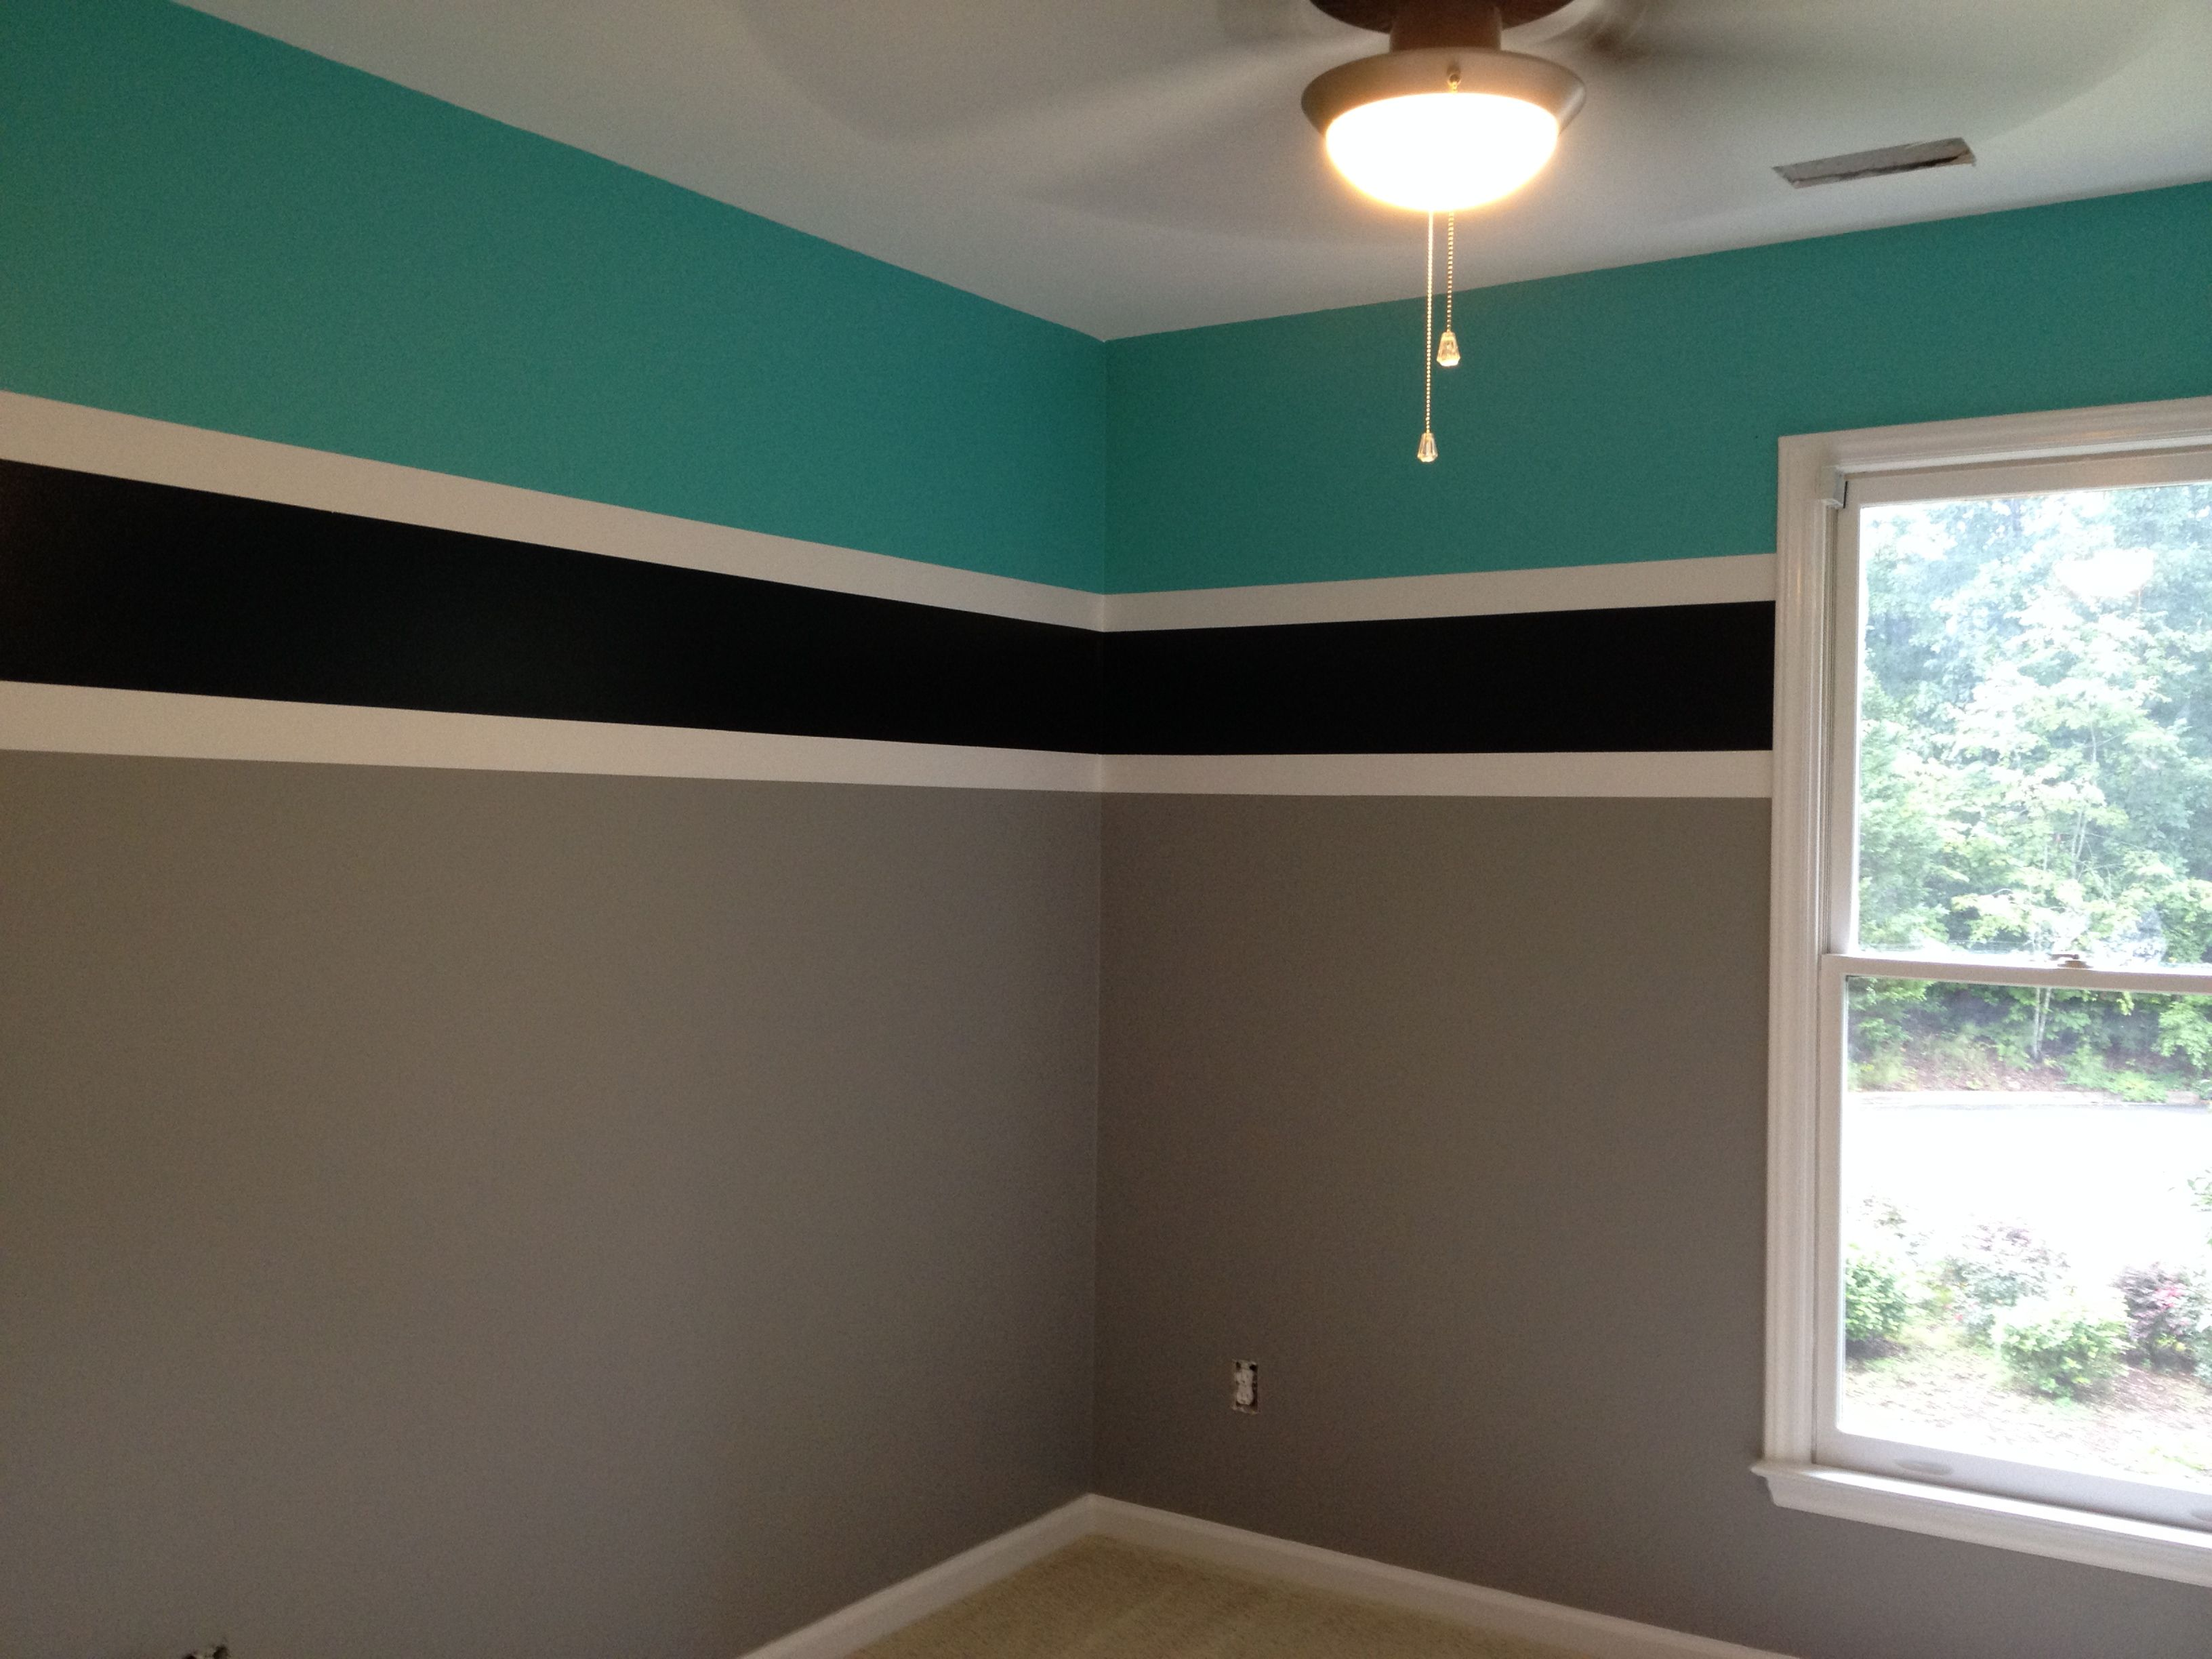 Bedroom wall paint ideas for boys - Find This Pin And More On Jeremy Bedroom Final Product Teenage Boys Room Colors